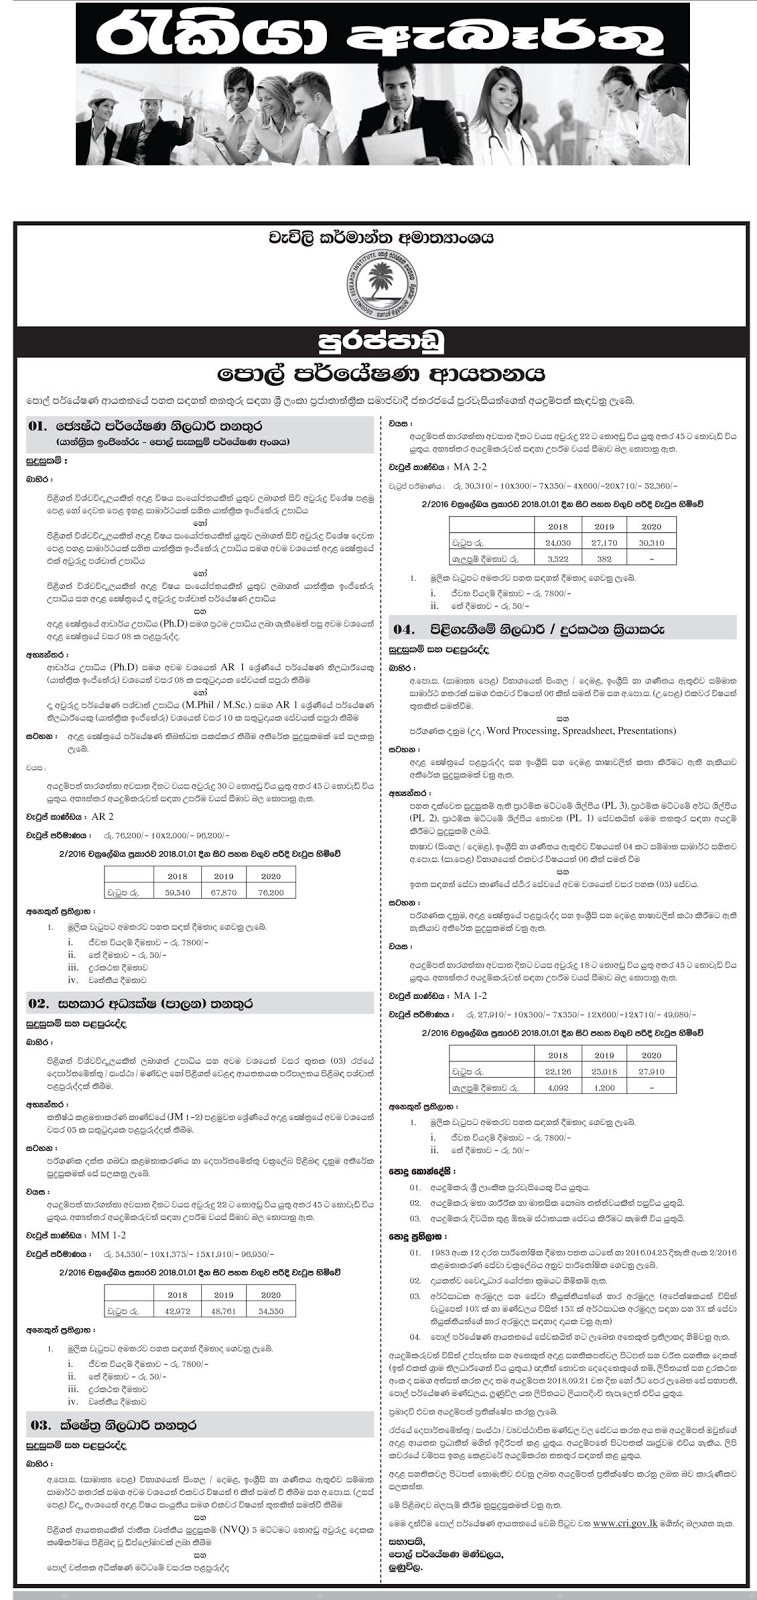 Senior Research Officer, Assistant Detector, Field Officer, Receptionist cum Telephone Operator Vacancy